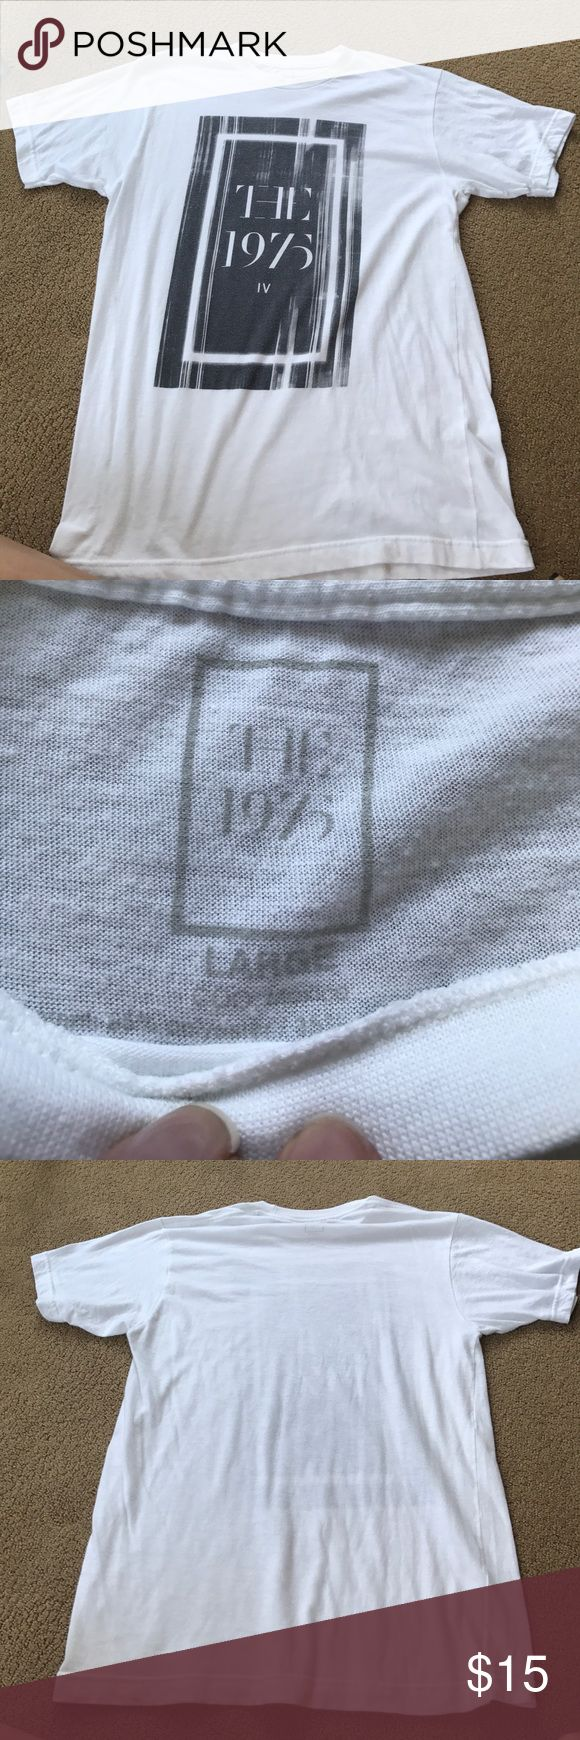 The 1975 Concert Merch Concert merch from a while ago. Worn only once so zero wear or tear. Its a really soft t shirt! The 1975 Tops Tees - Short Sleeve